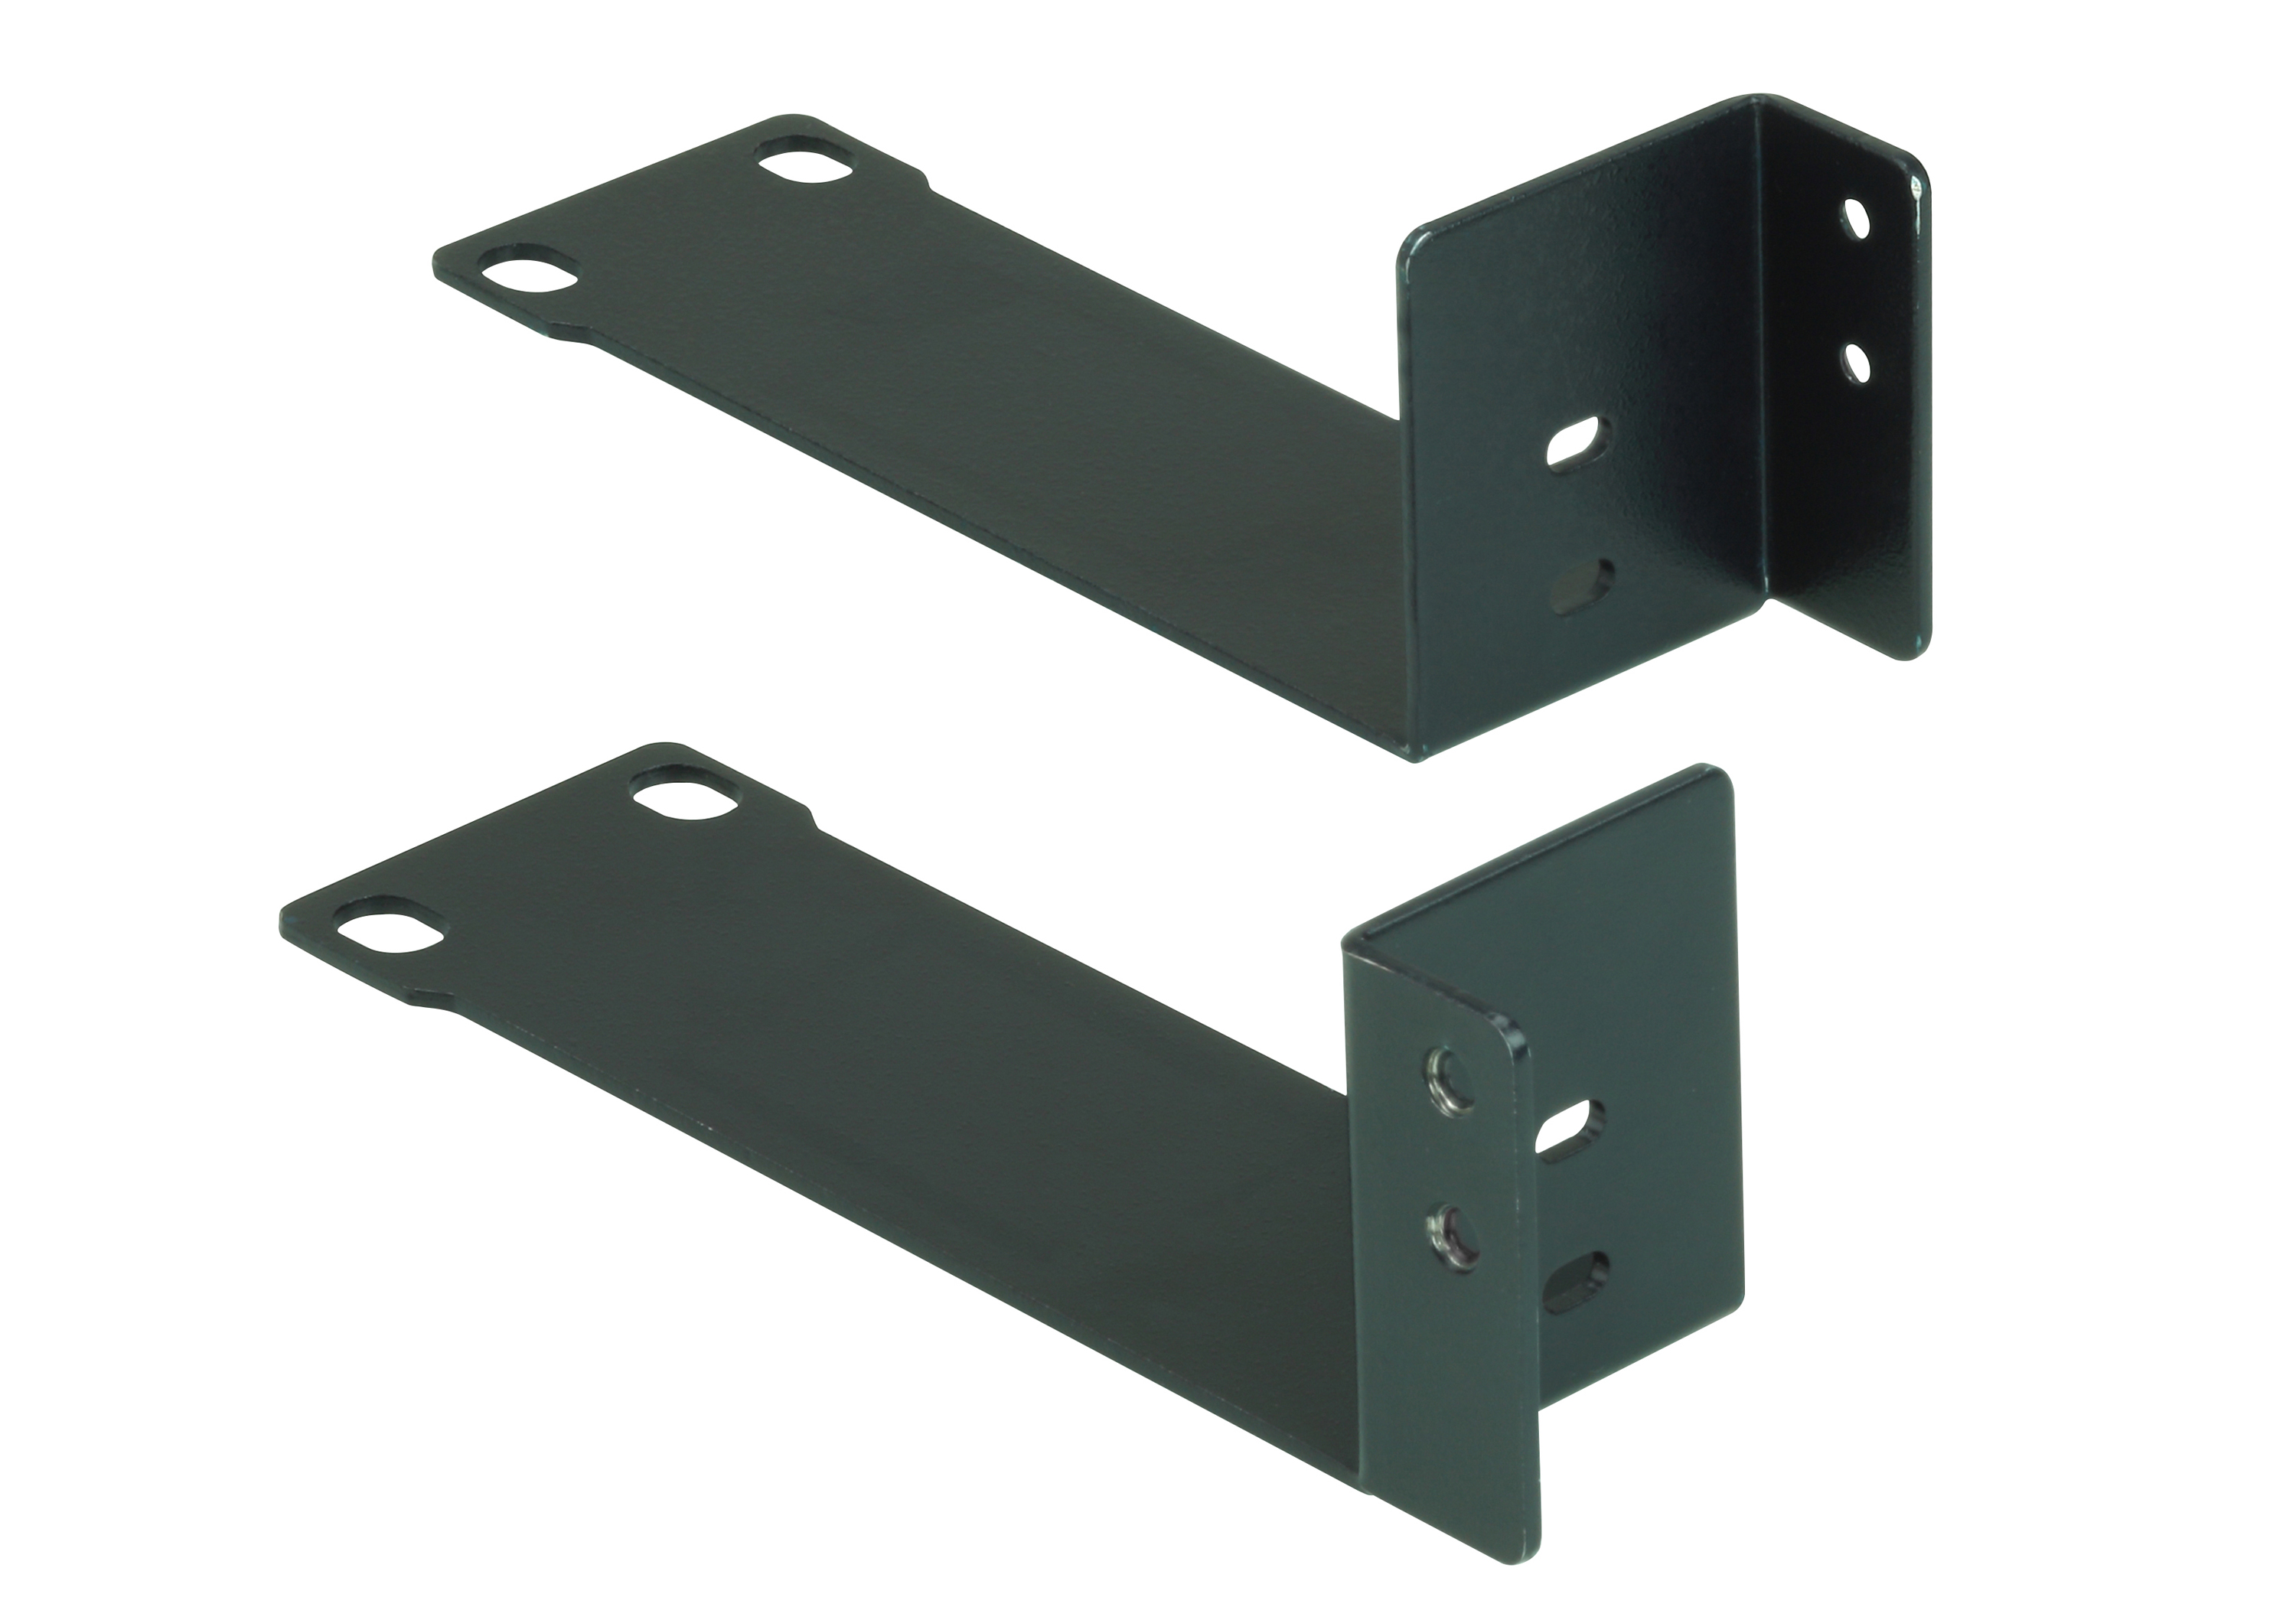 Single Rack Mount Kit